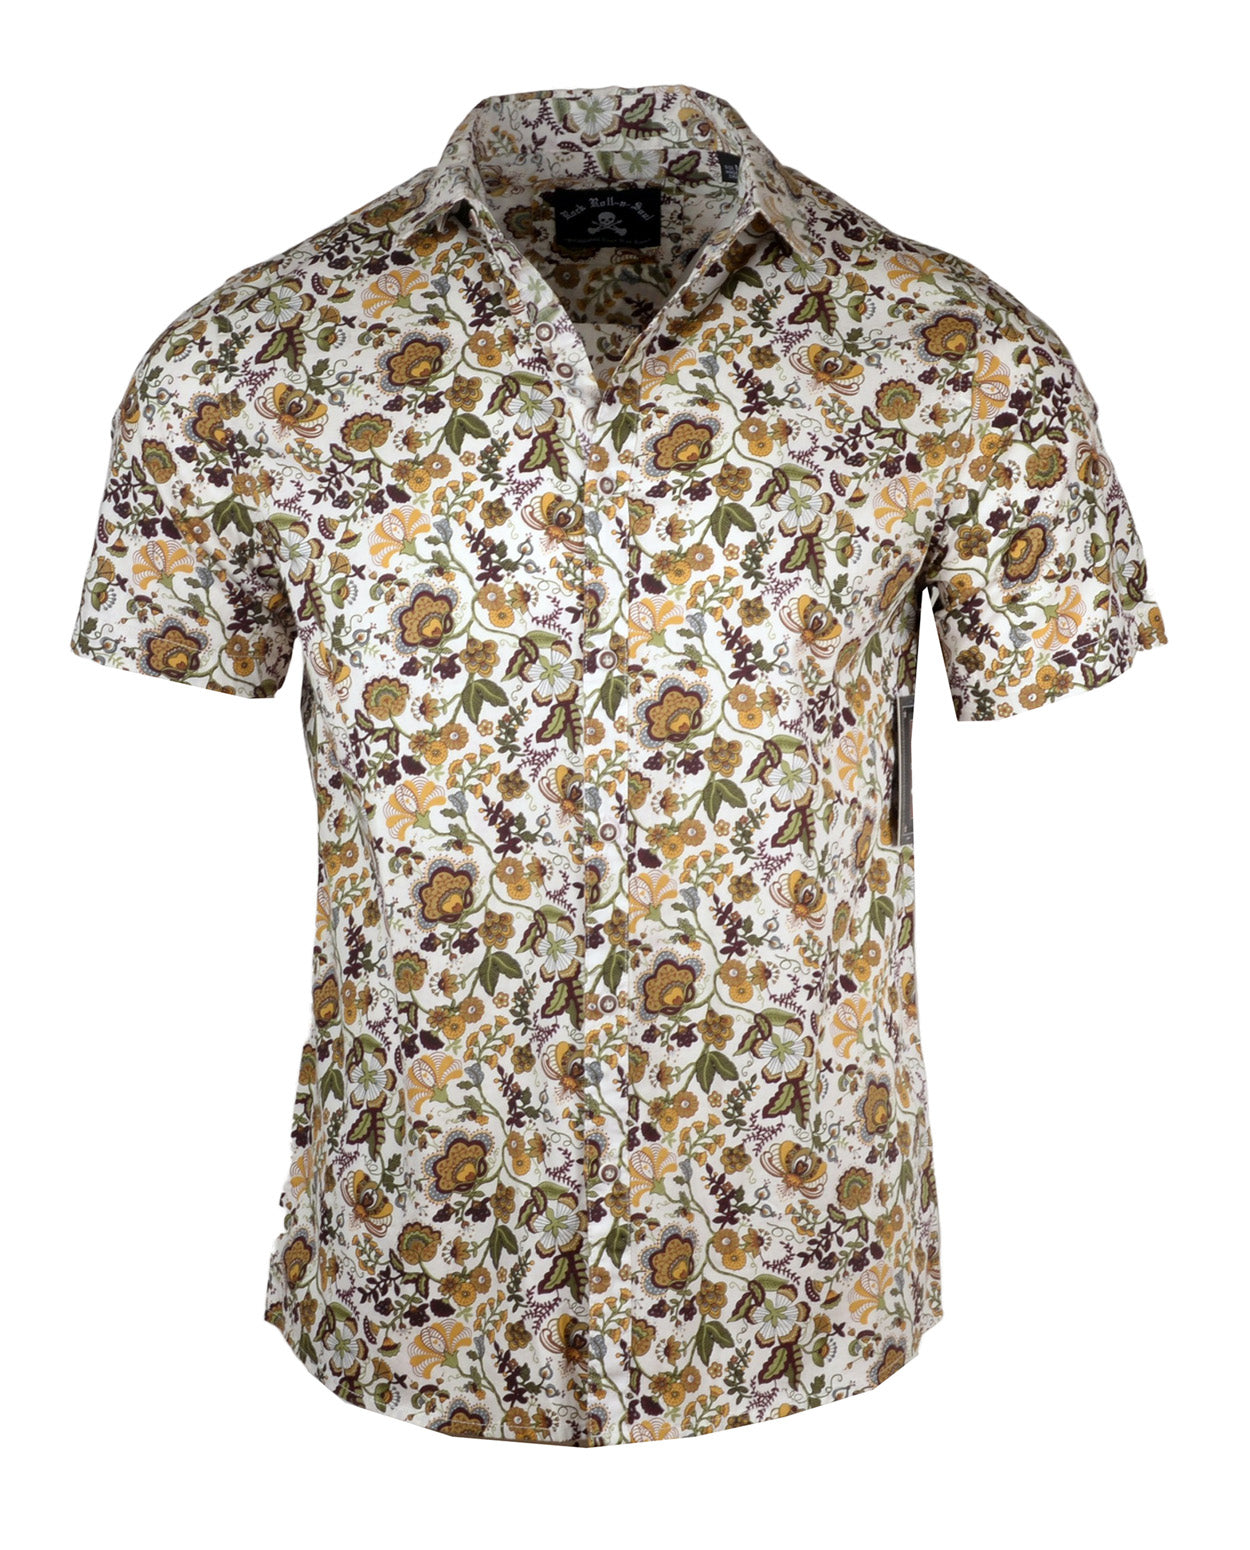 Men's Casual Fashion Button Up Shirt - S/S Our Vines are Divine by Rock Roll n Soul